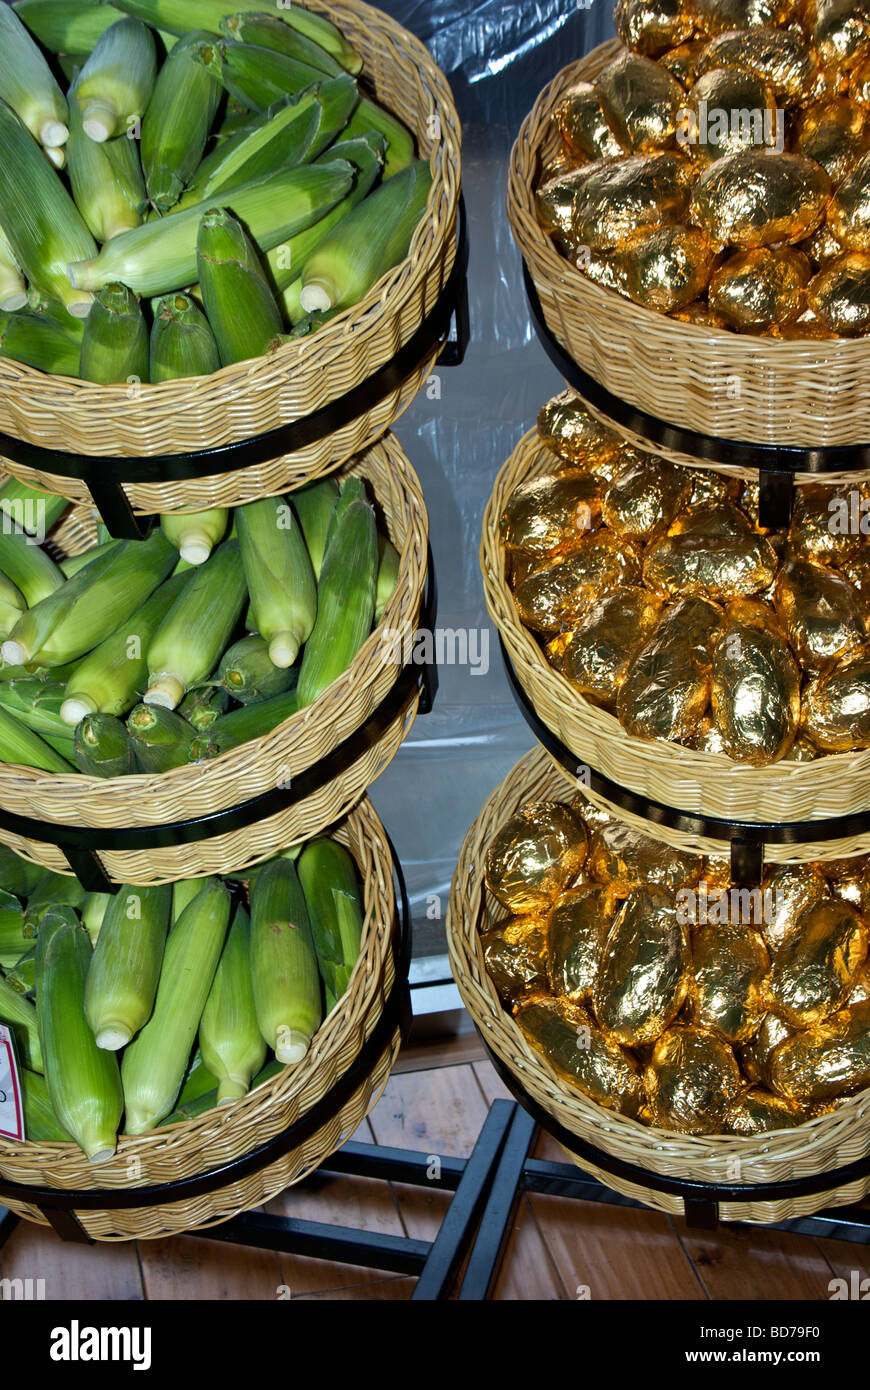 Baskets of jubilee corn and gold foil wrapped baking potatoes at butcher shop - Stock Image